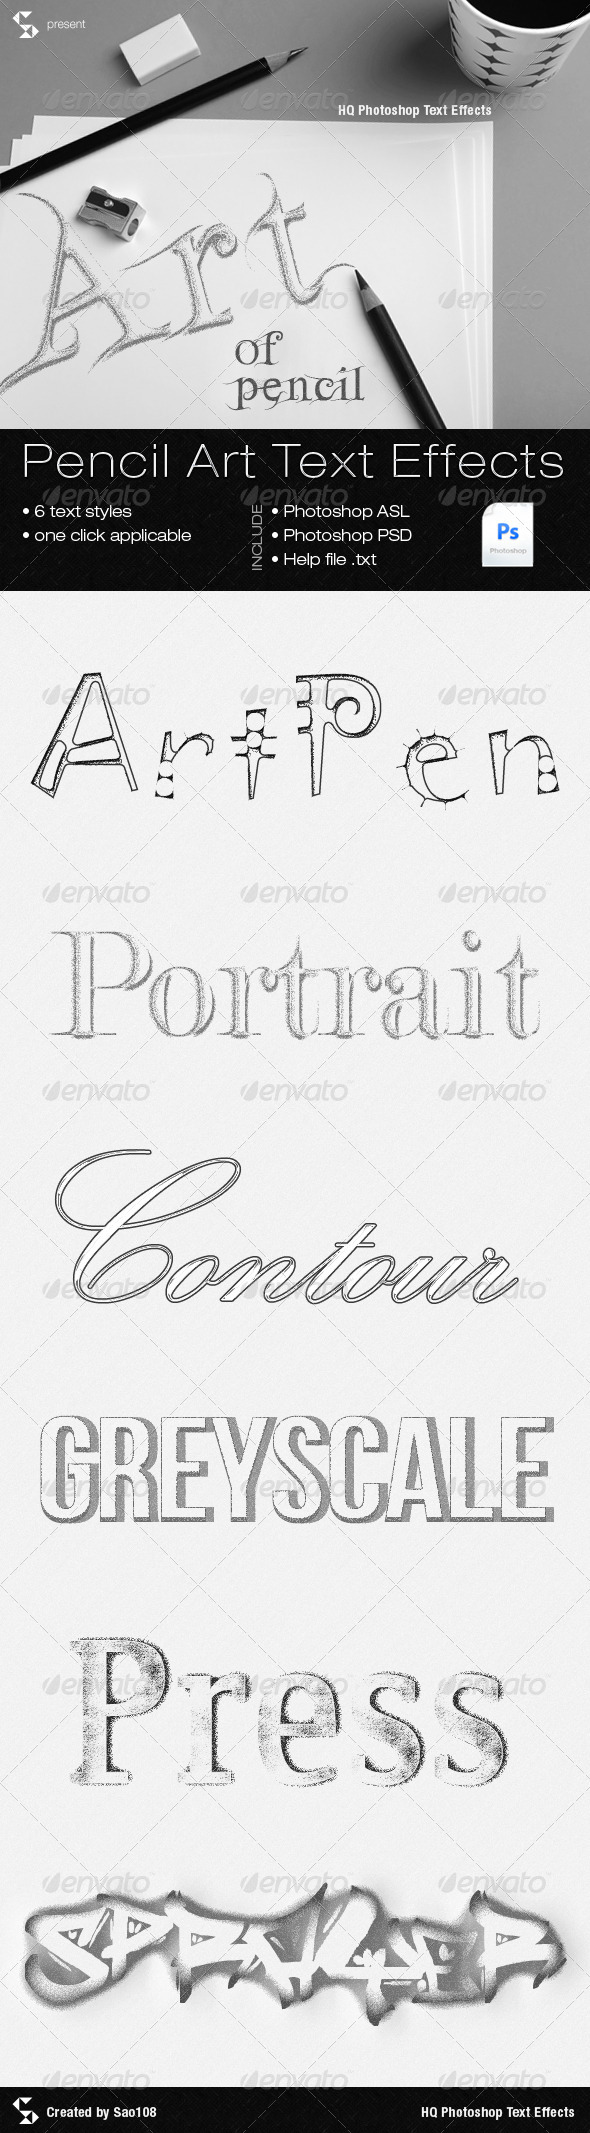 GraphicRiver Pencil Art Text Effects 5740437